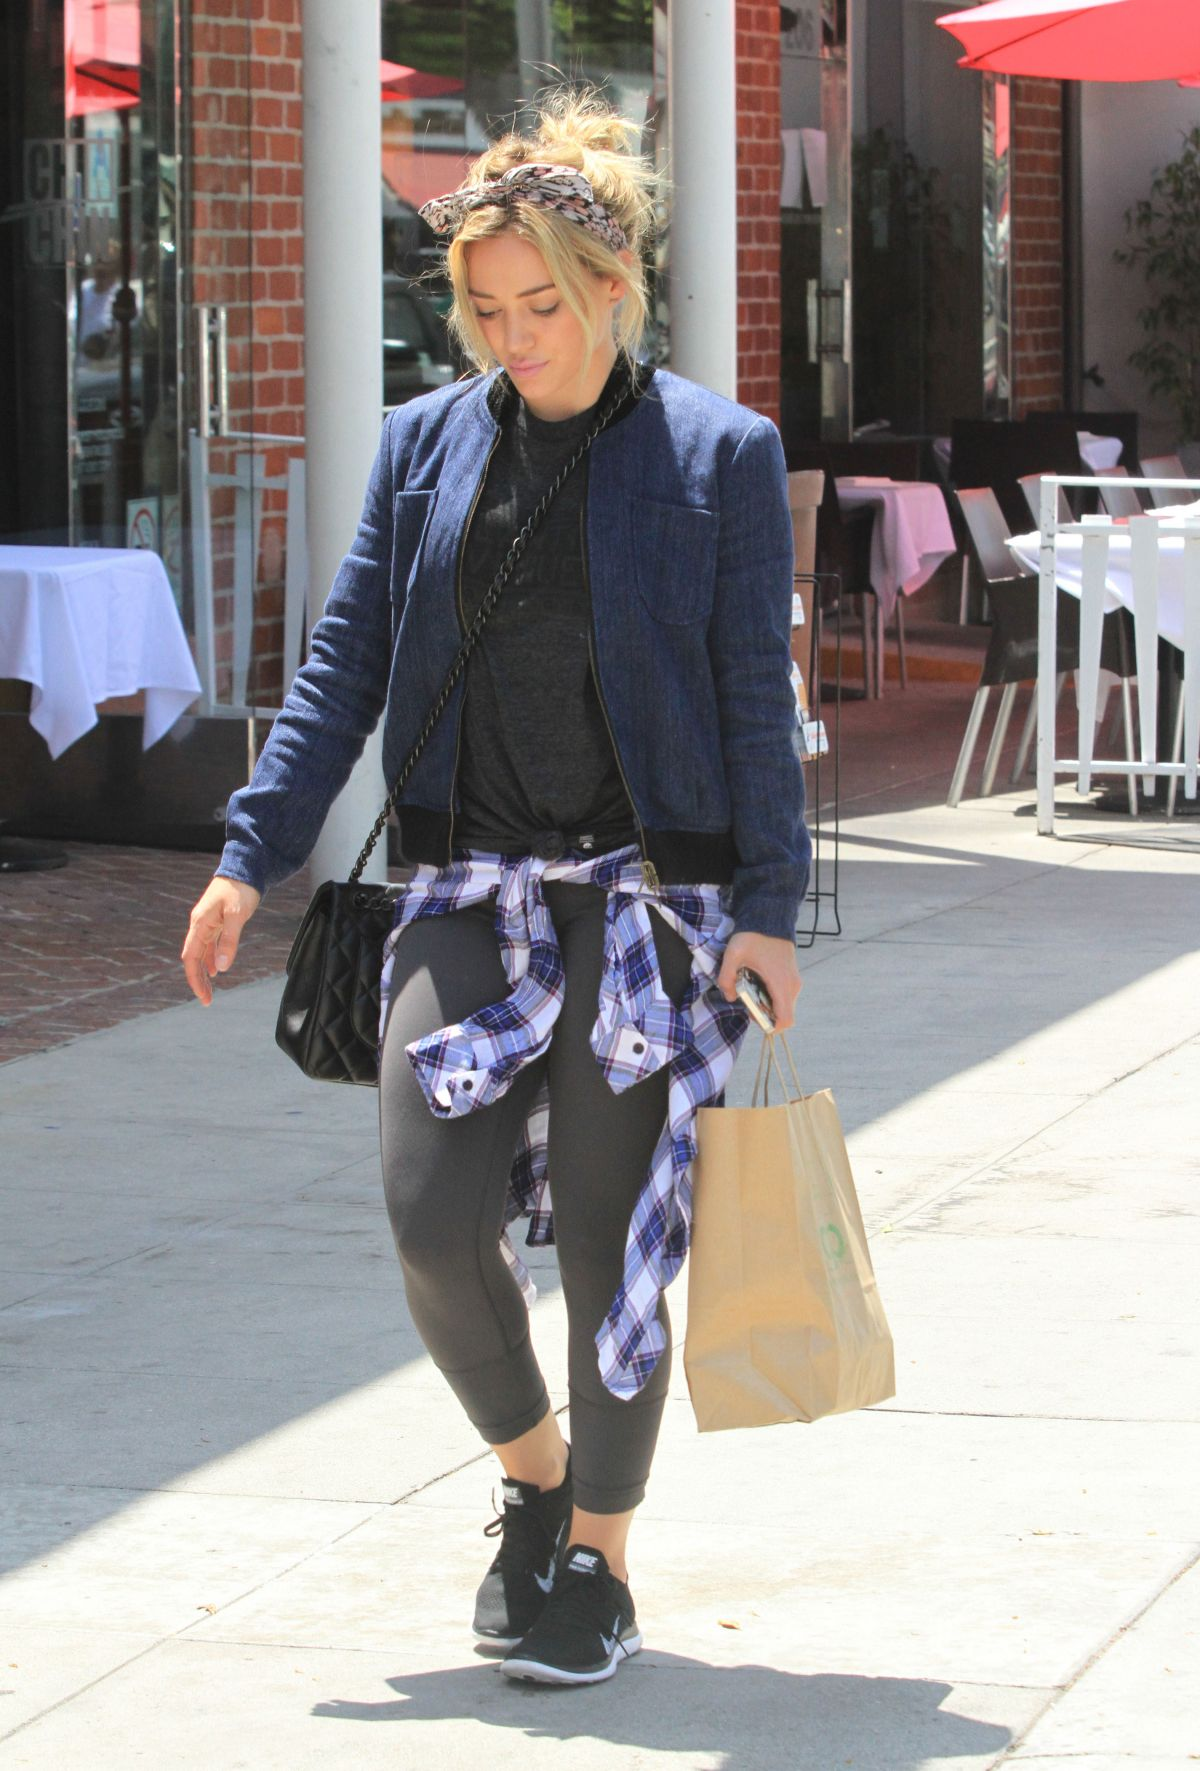 HILARY DUFF Leaves a Nail Salon in Beverly Hills - HawtCelebs